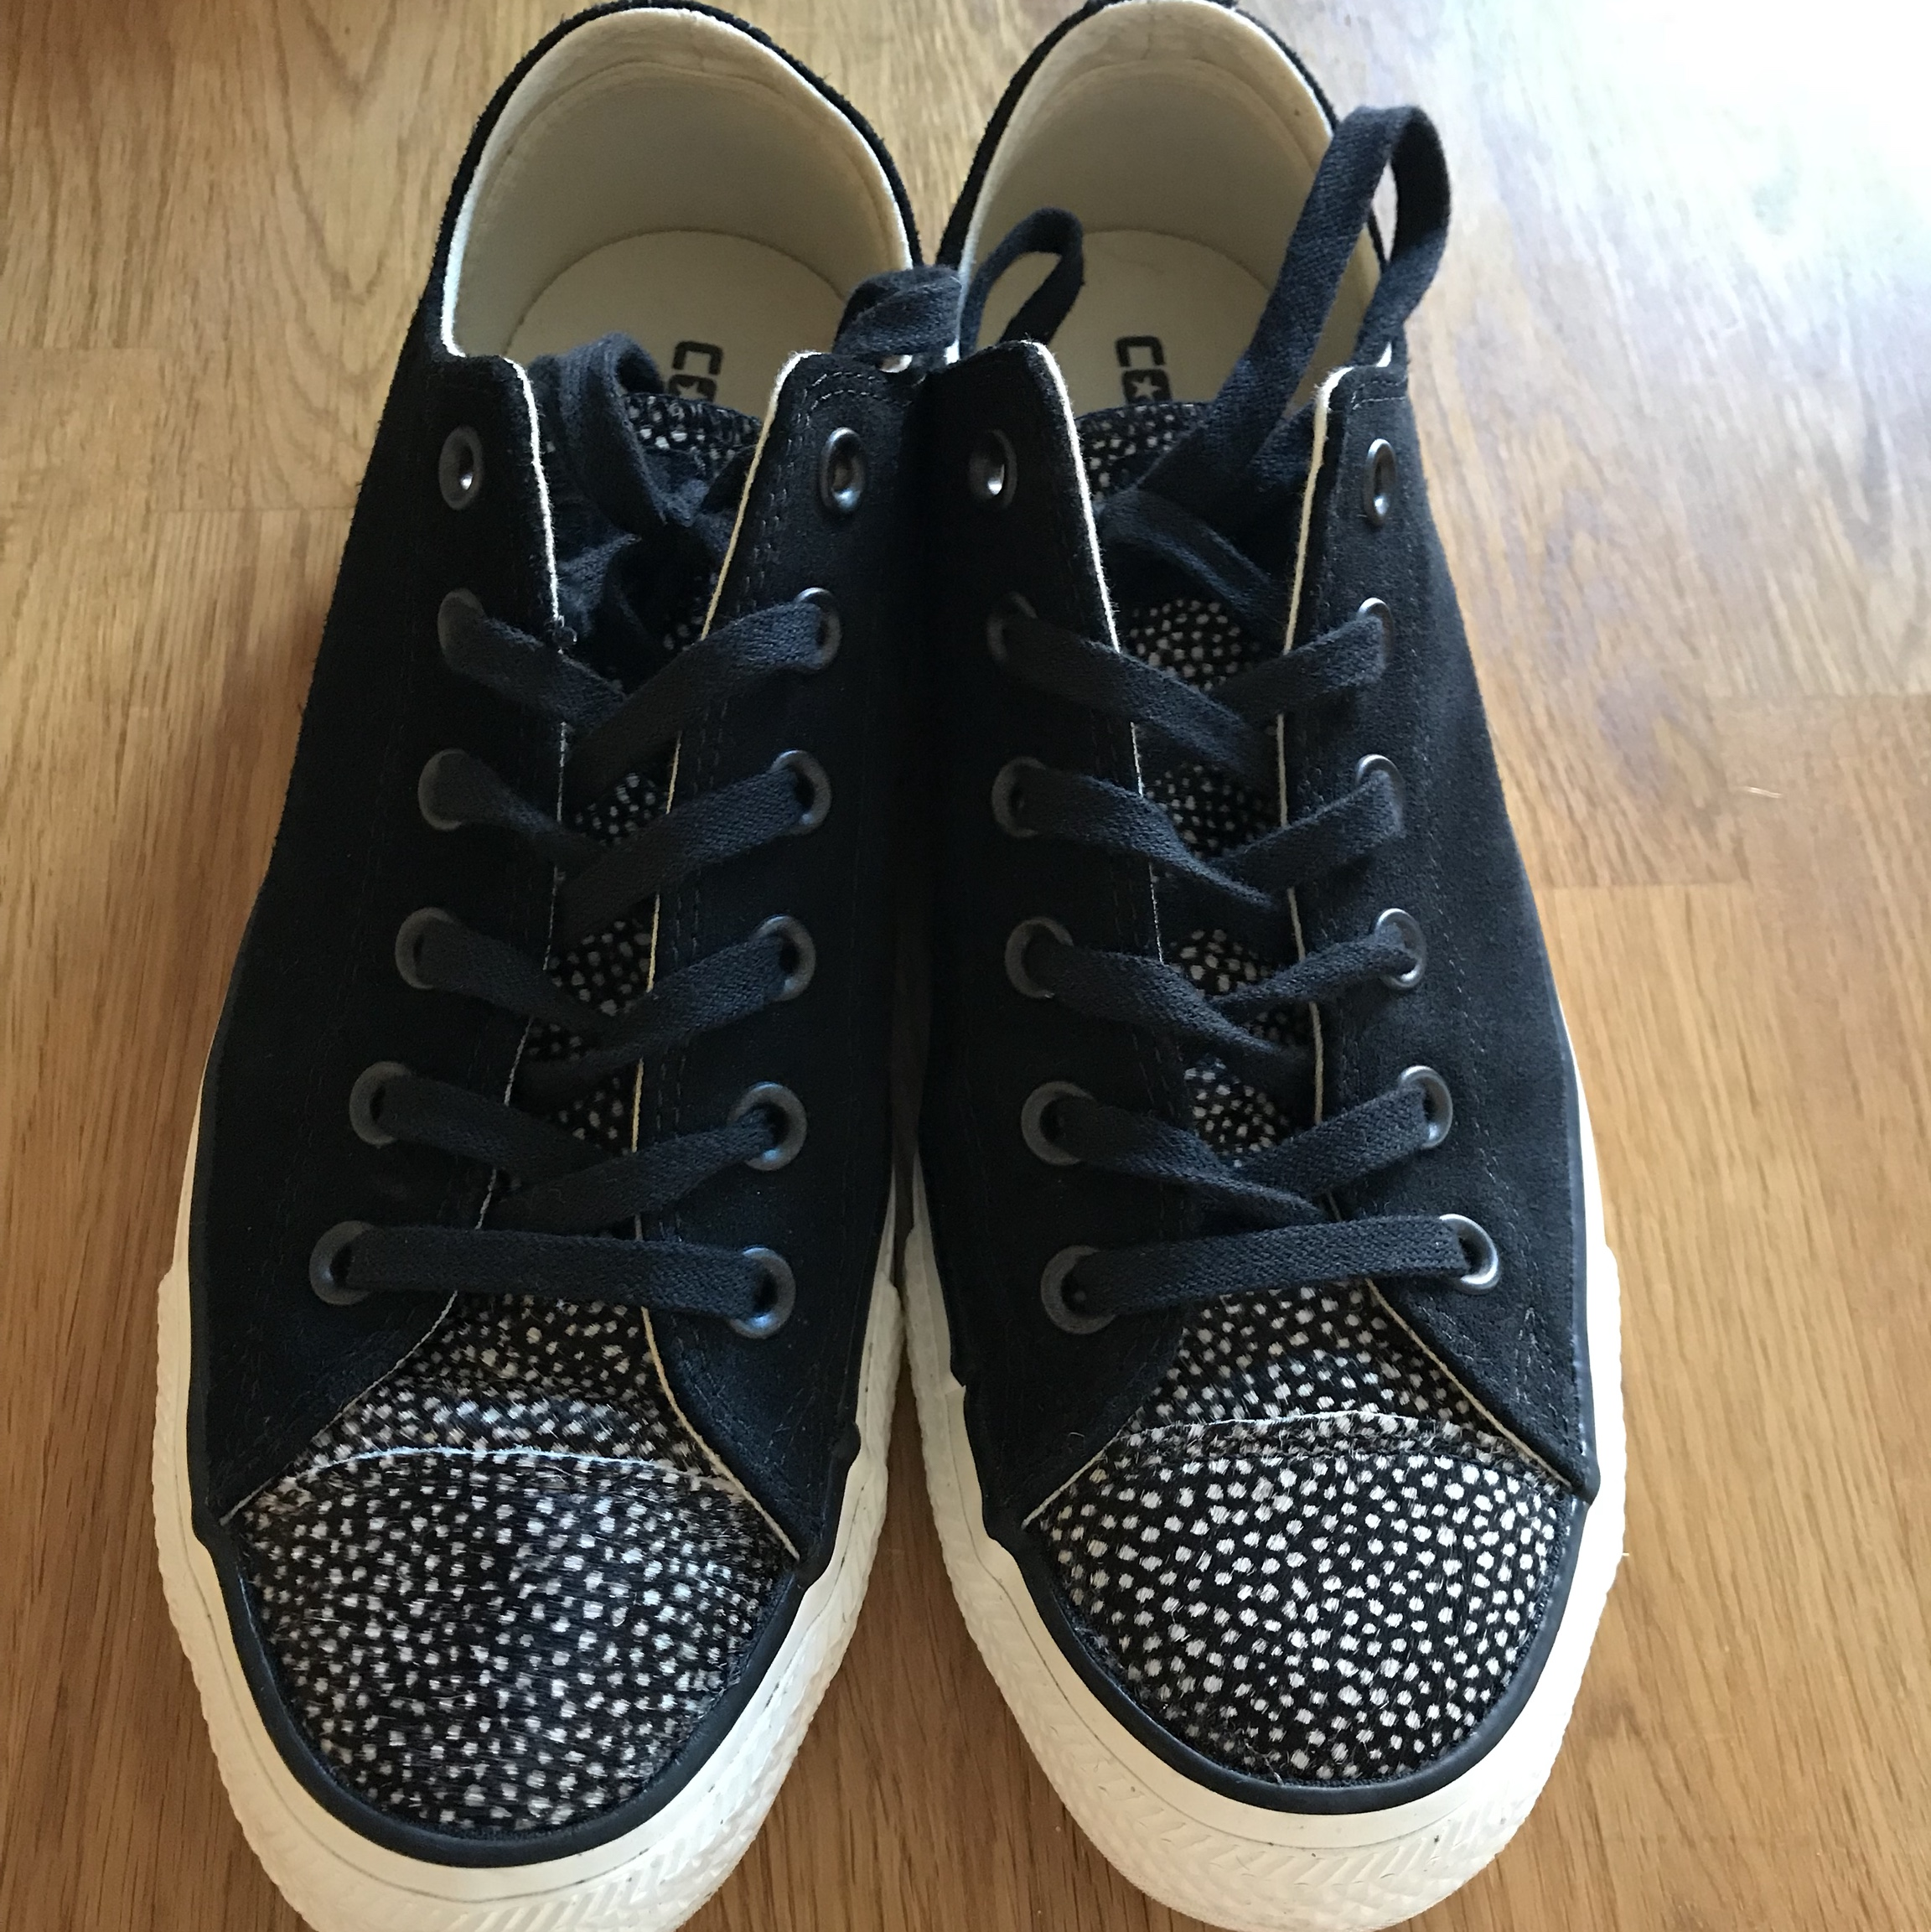 095cdb83b6 Converse all star black suede trainers with animal... - Depop